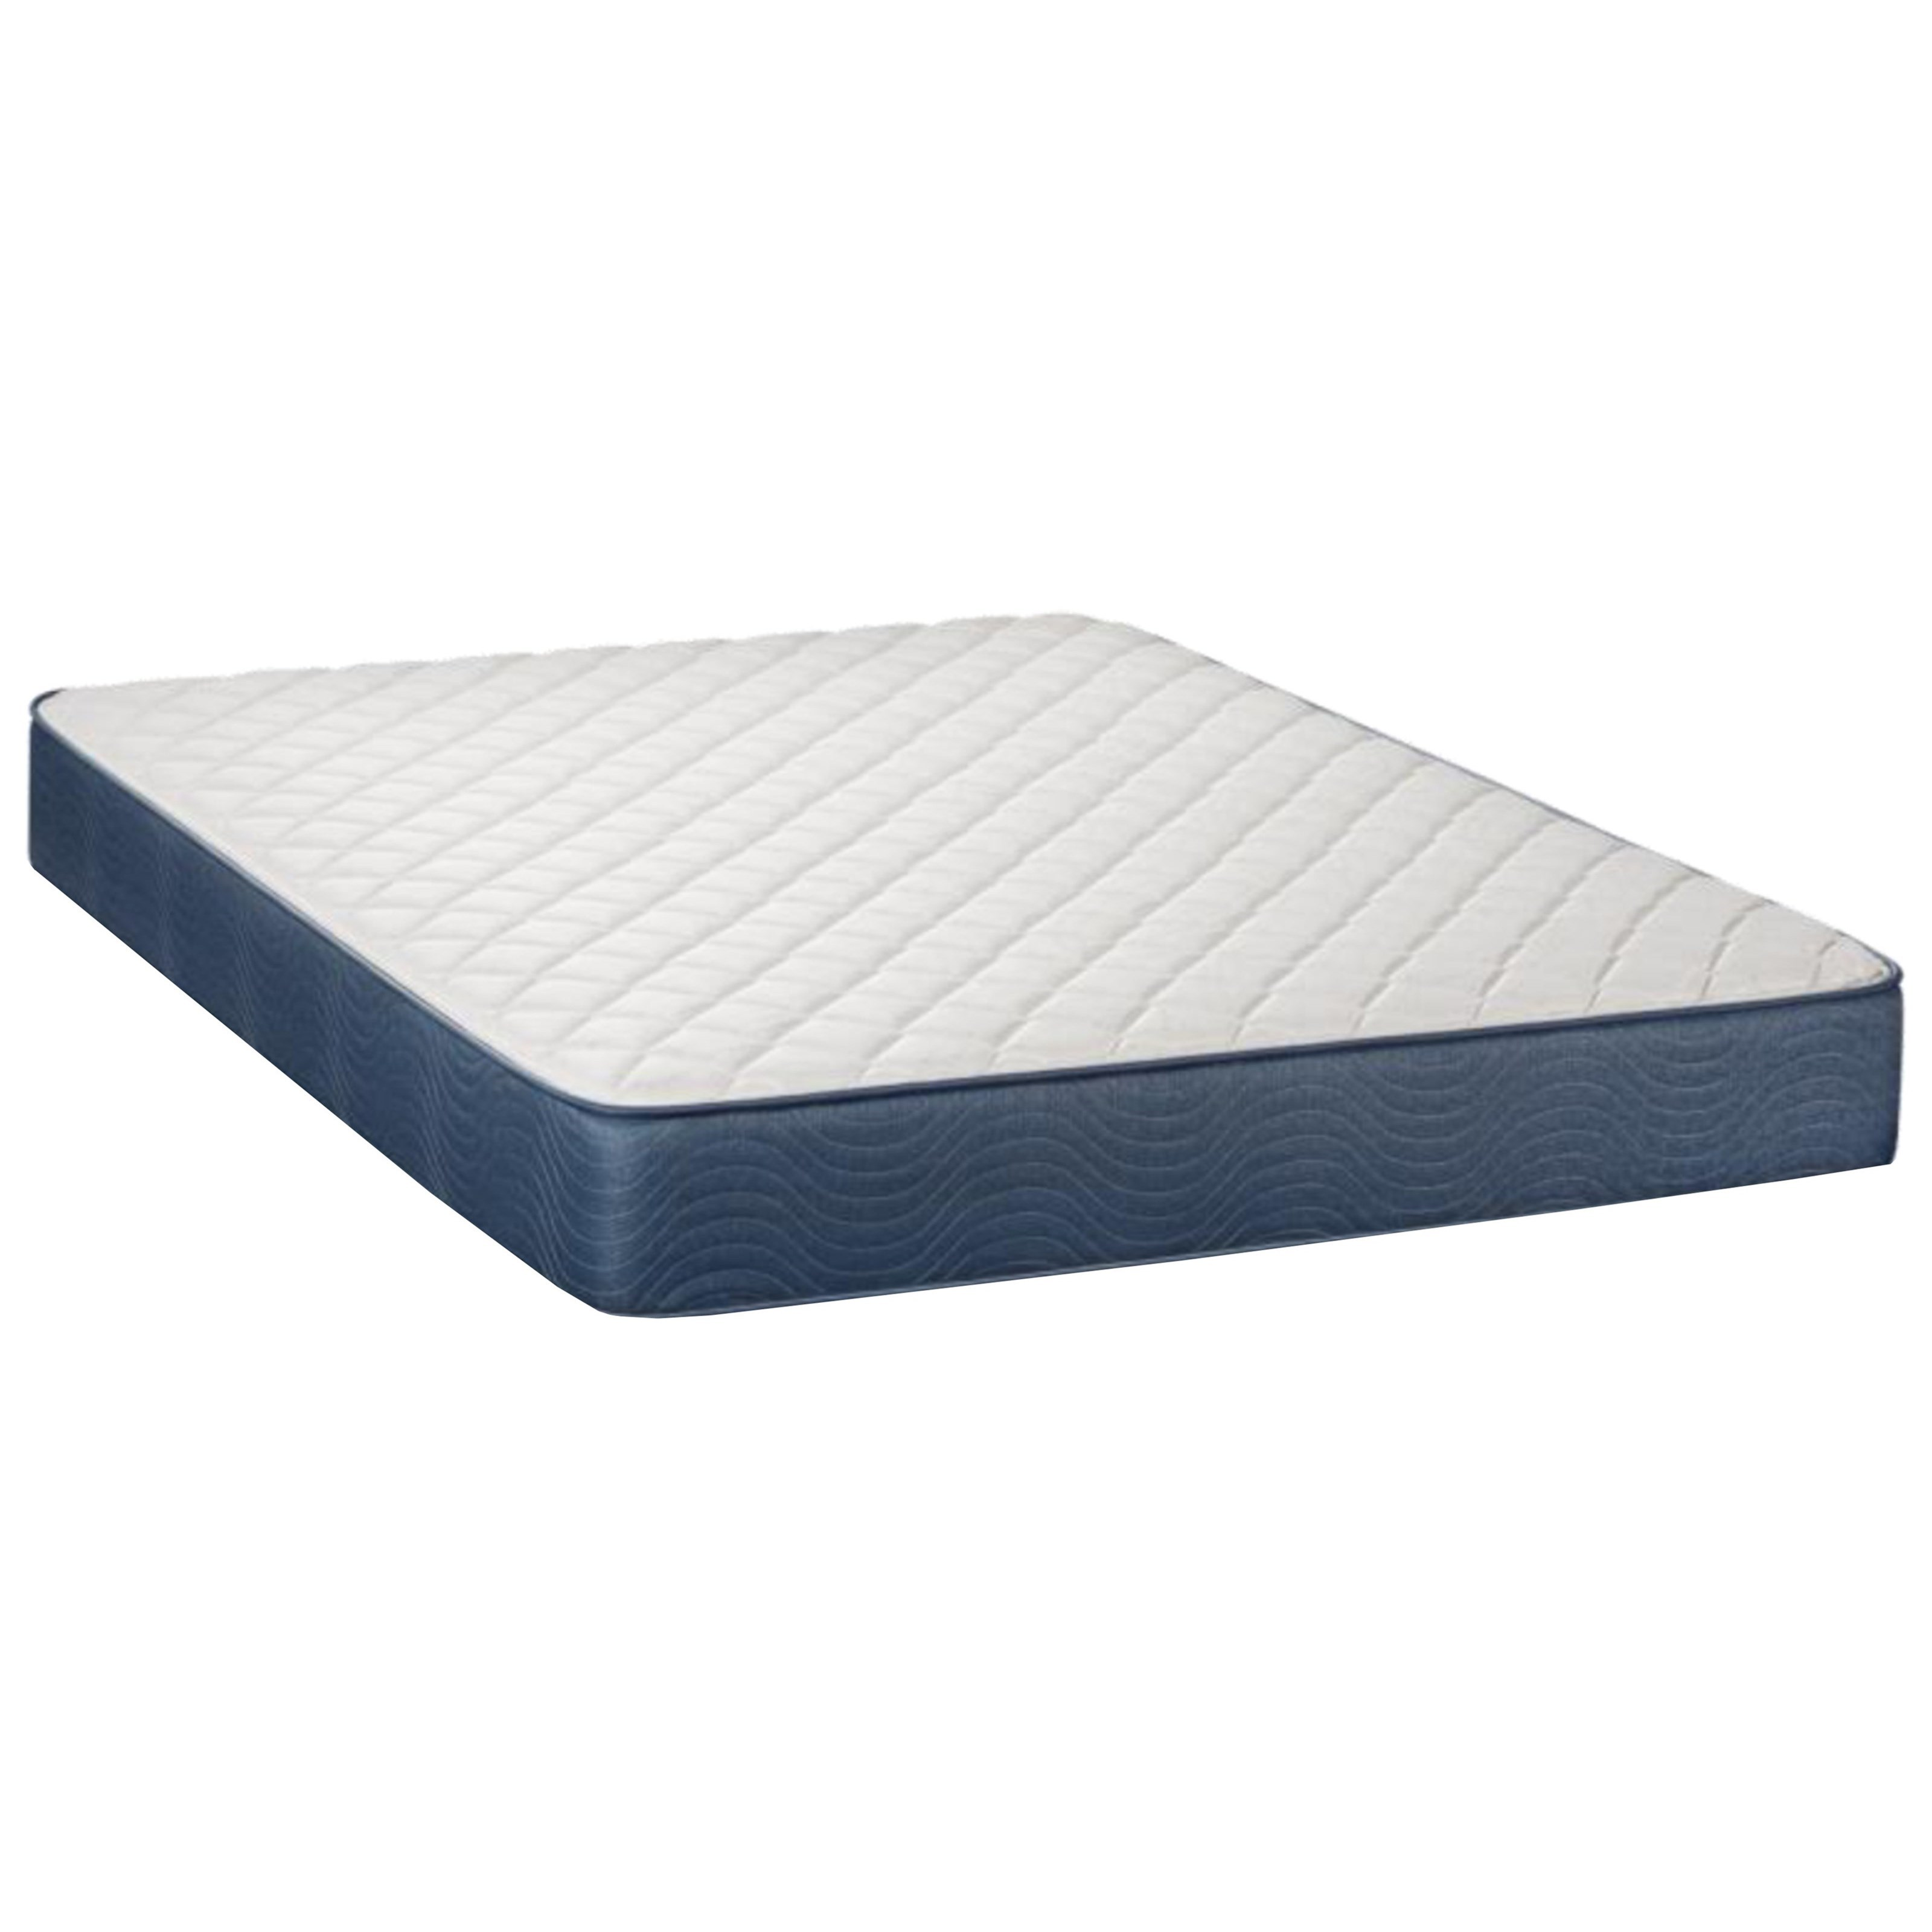 """Sumner Firm Full 9"""" Firm Two Sided Mattress by Restonic at H.L. Stephens"""